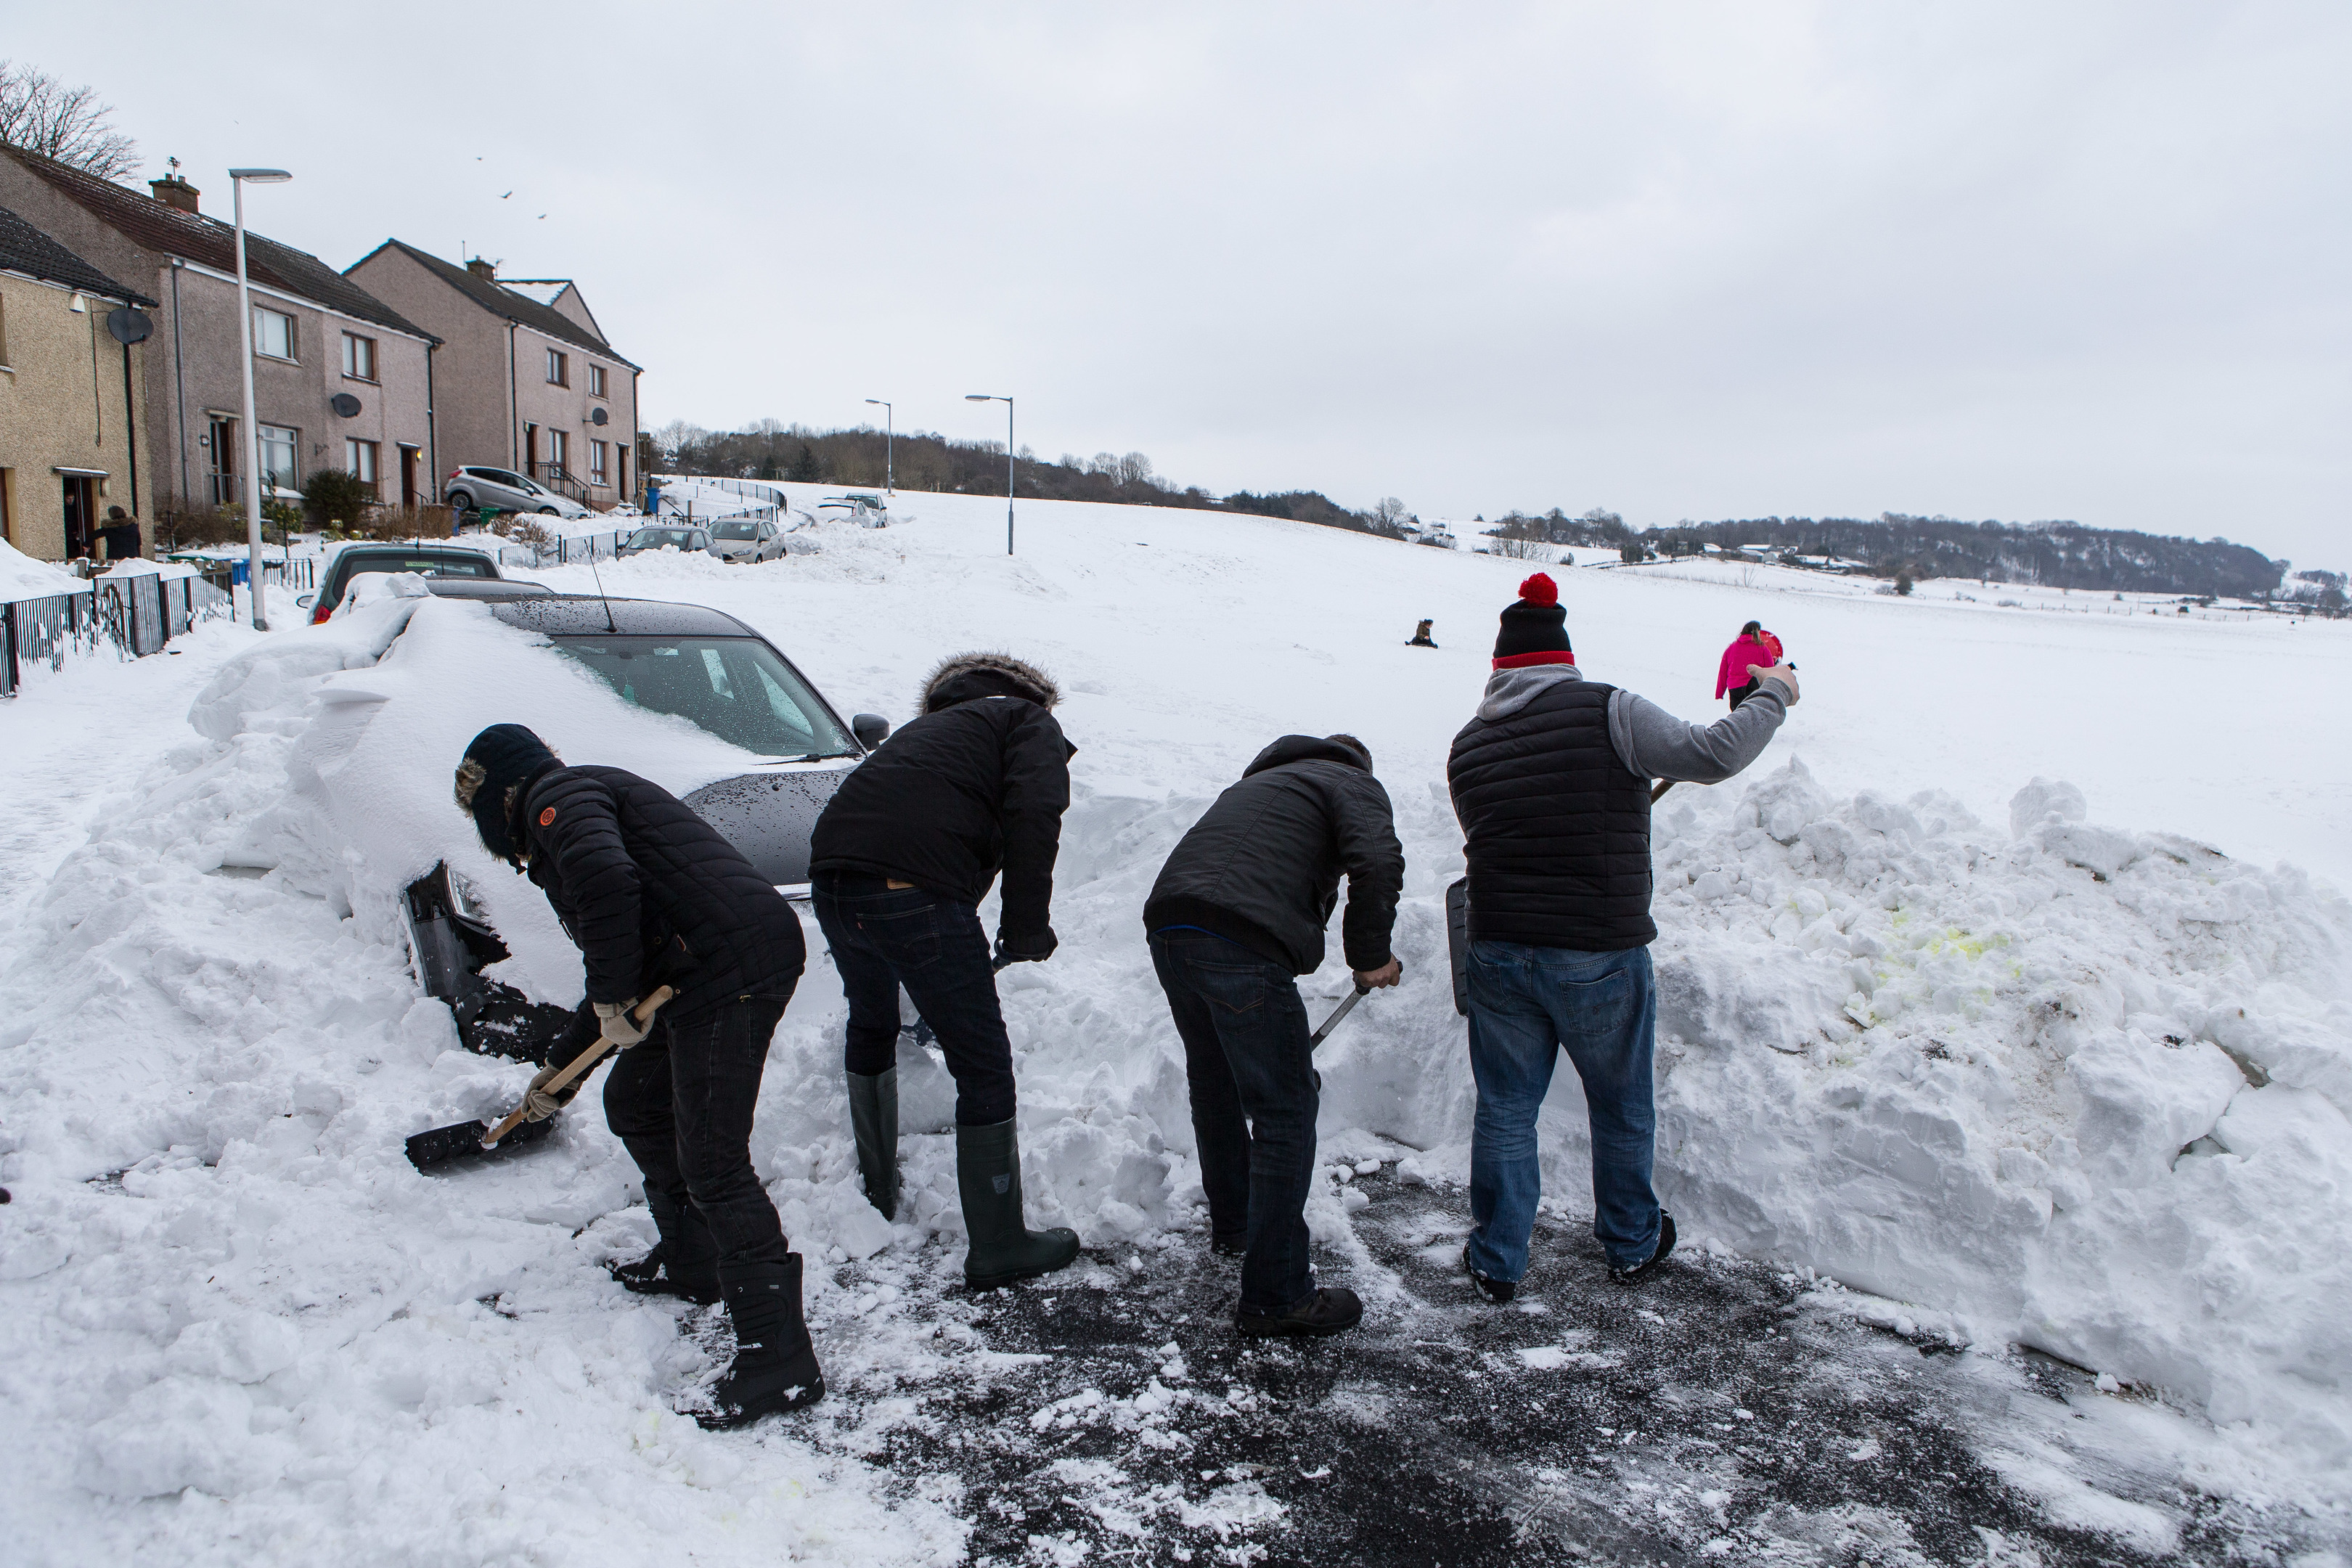 Cardenden residents Rab Wilson, Brian Allen, Brian Donaldson, Kevin Diamond and Michael Russell start to unearth their vehicles buried under the drifts.